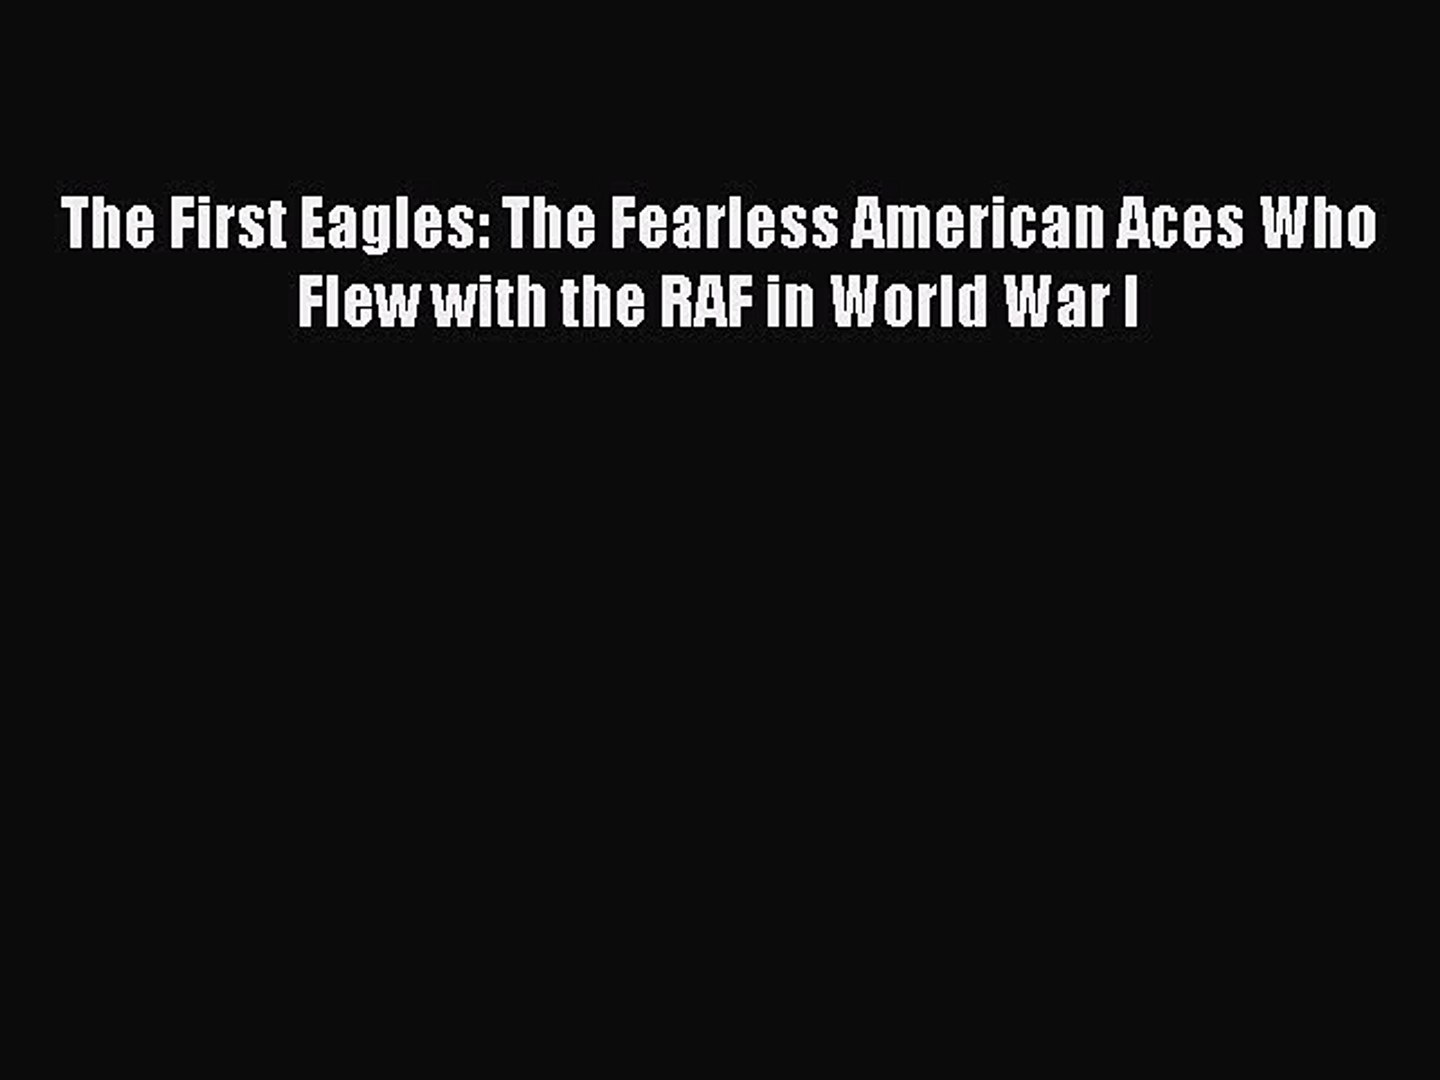 Read The First Eagles: The Fearless American Aces Who Flew with the RAF in World War I Ebook